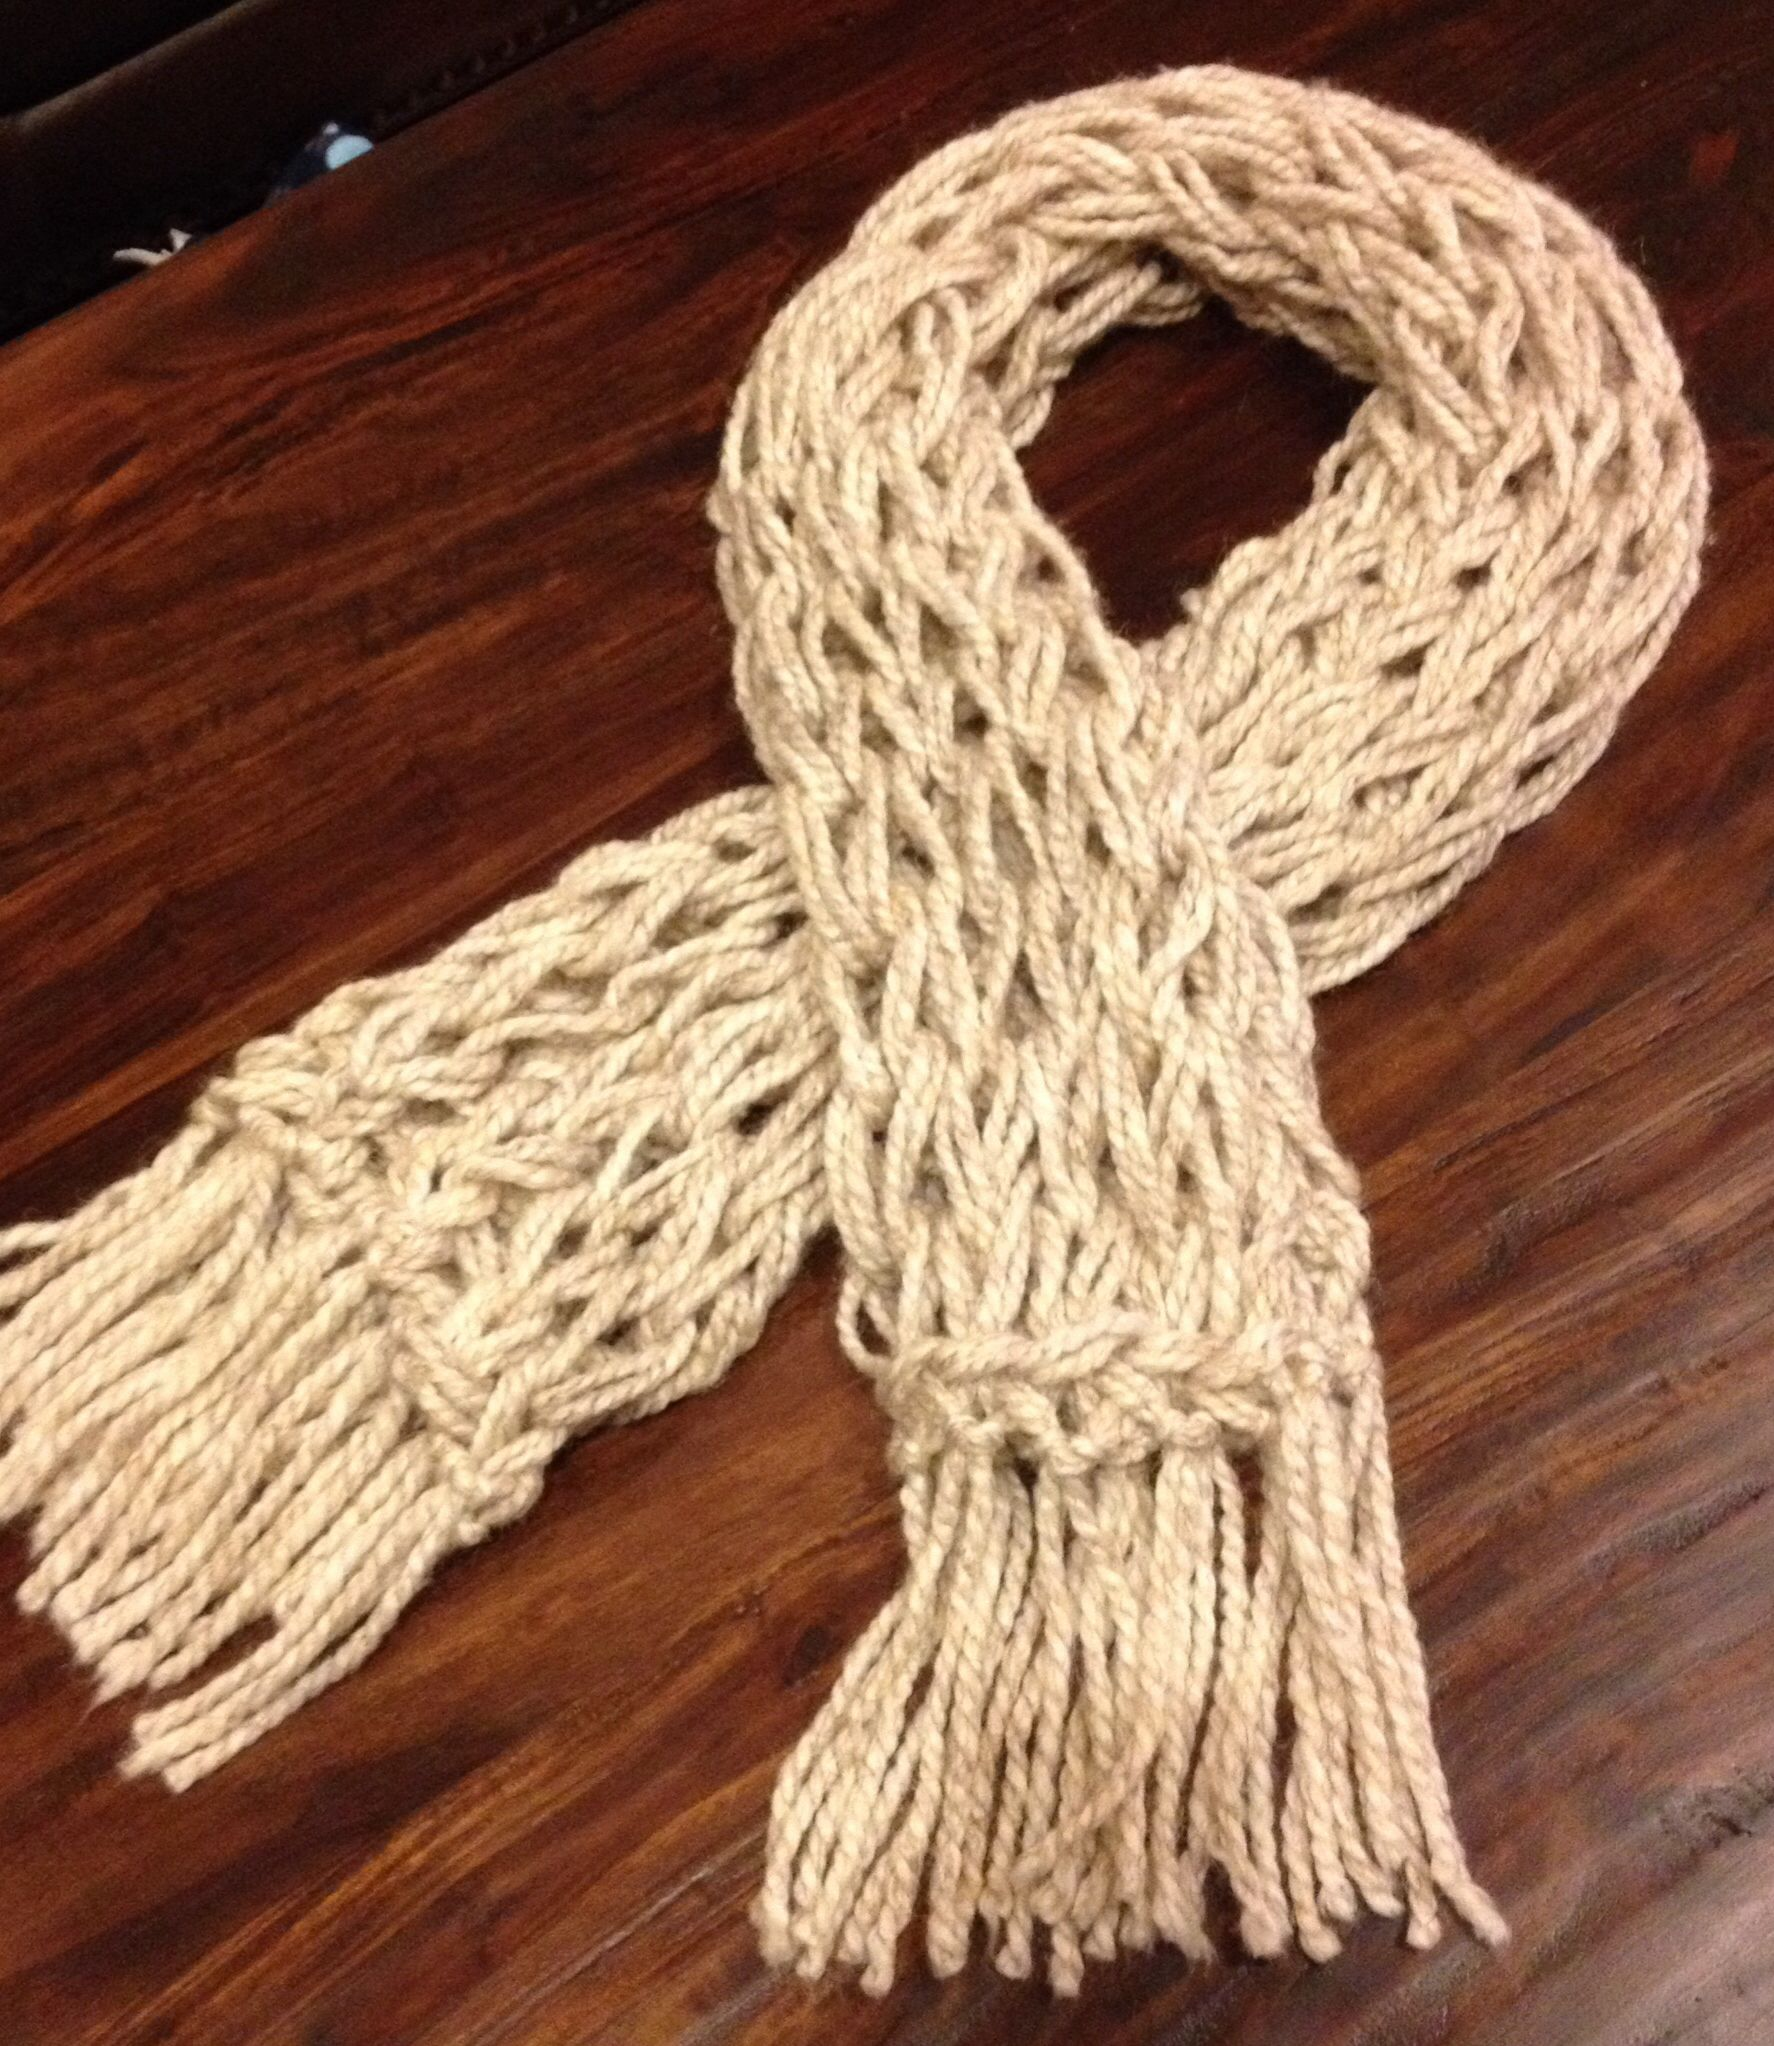 Crocheting With Arms : Ivory Arm Knitted Scarf Knitting/Crocheting Pinterest